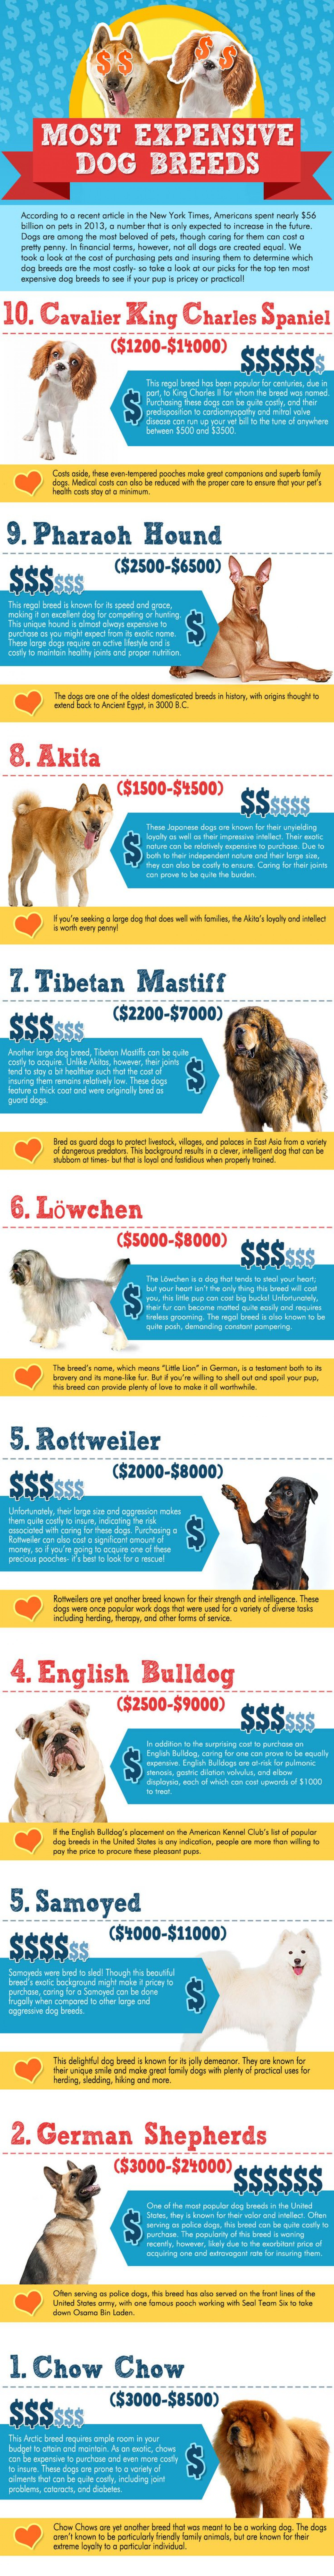 Top 10 Most Expensive Dog Breeds Infographic